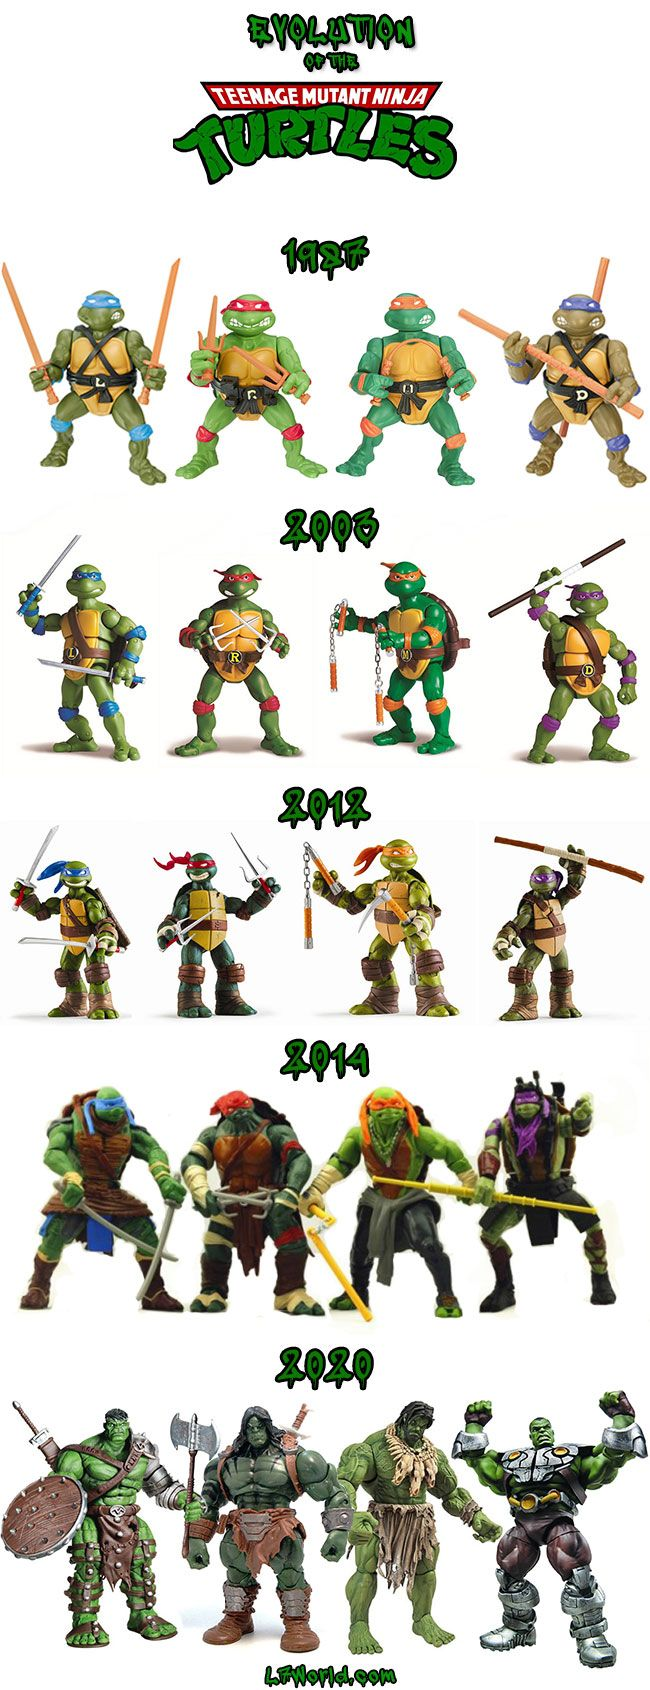 Teenage Mutant Ninja Turtles movie toys 2014: The Teenage Mutant Ninja Turtles…